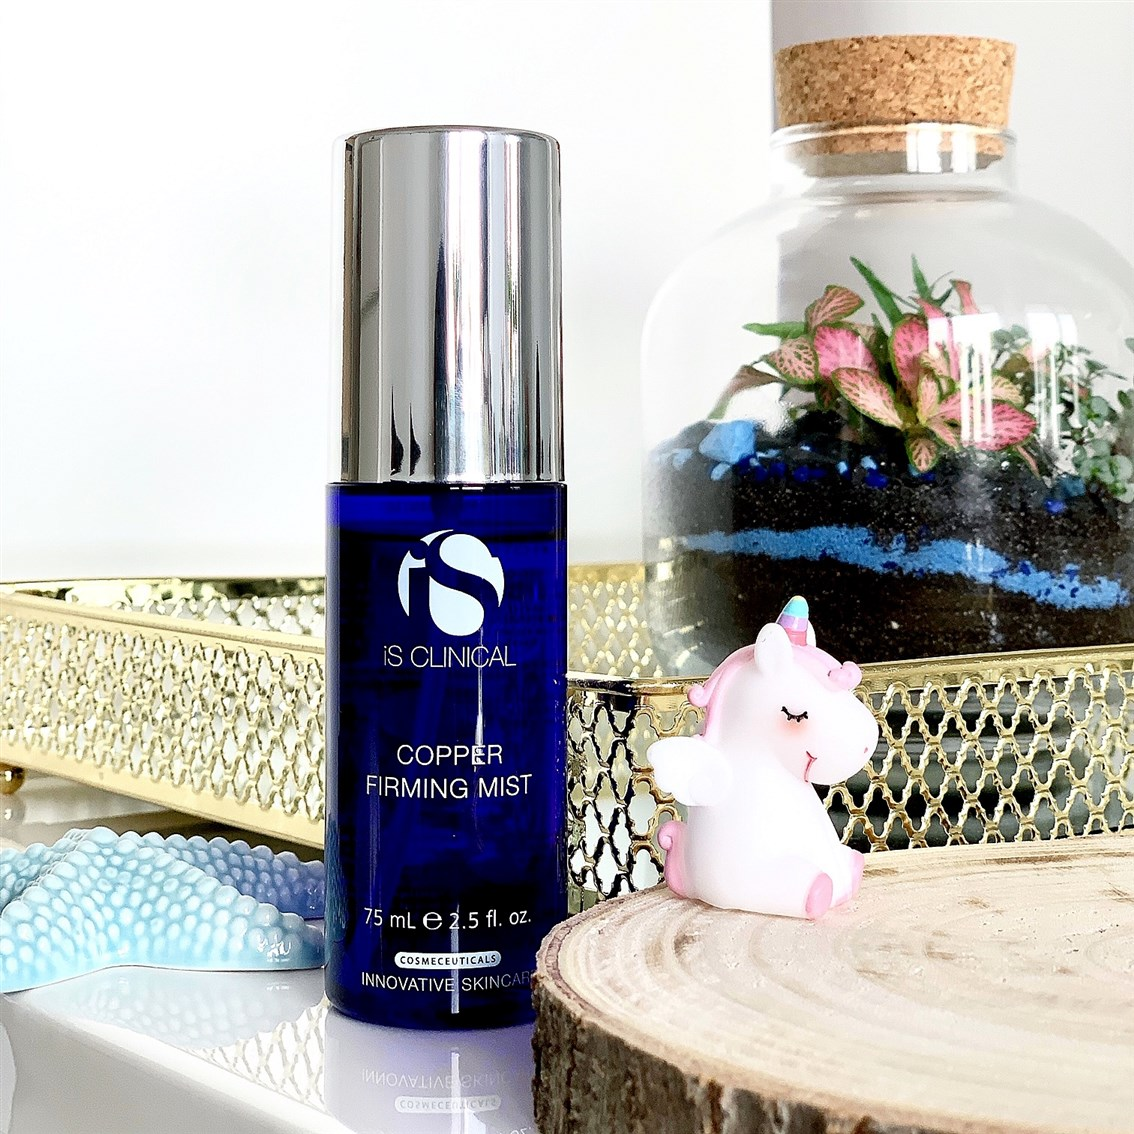 Is Clinical Cooper Firming Mist blog